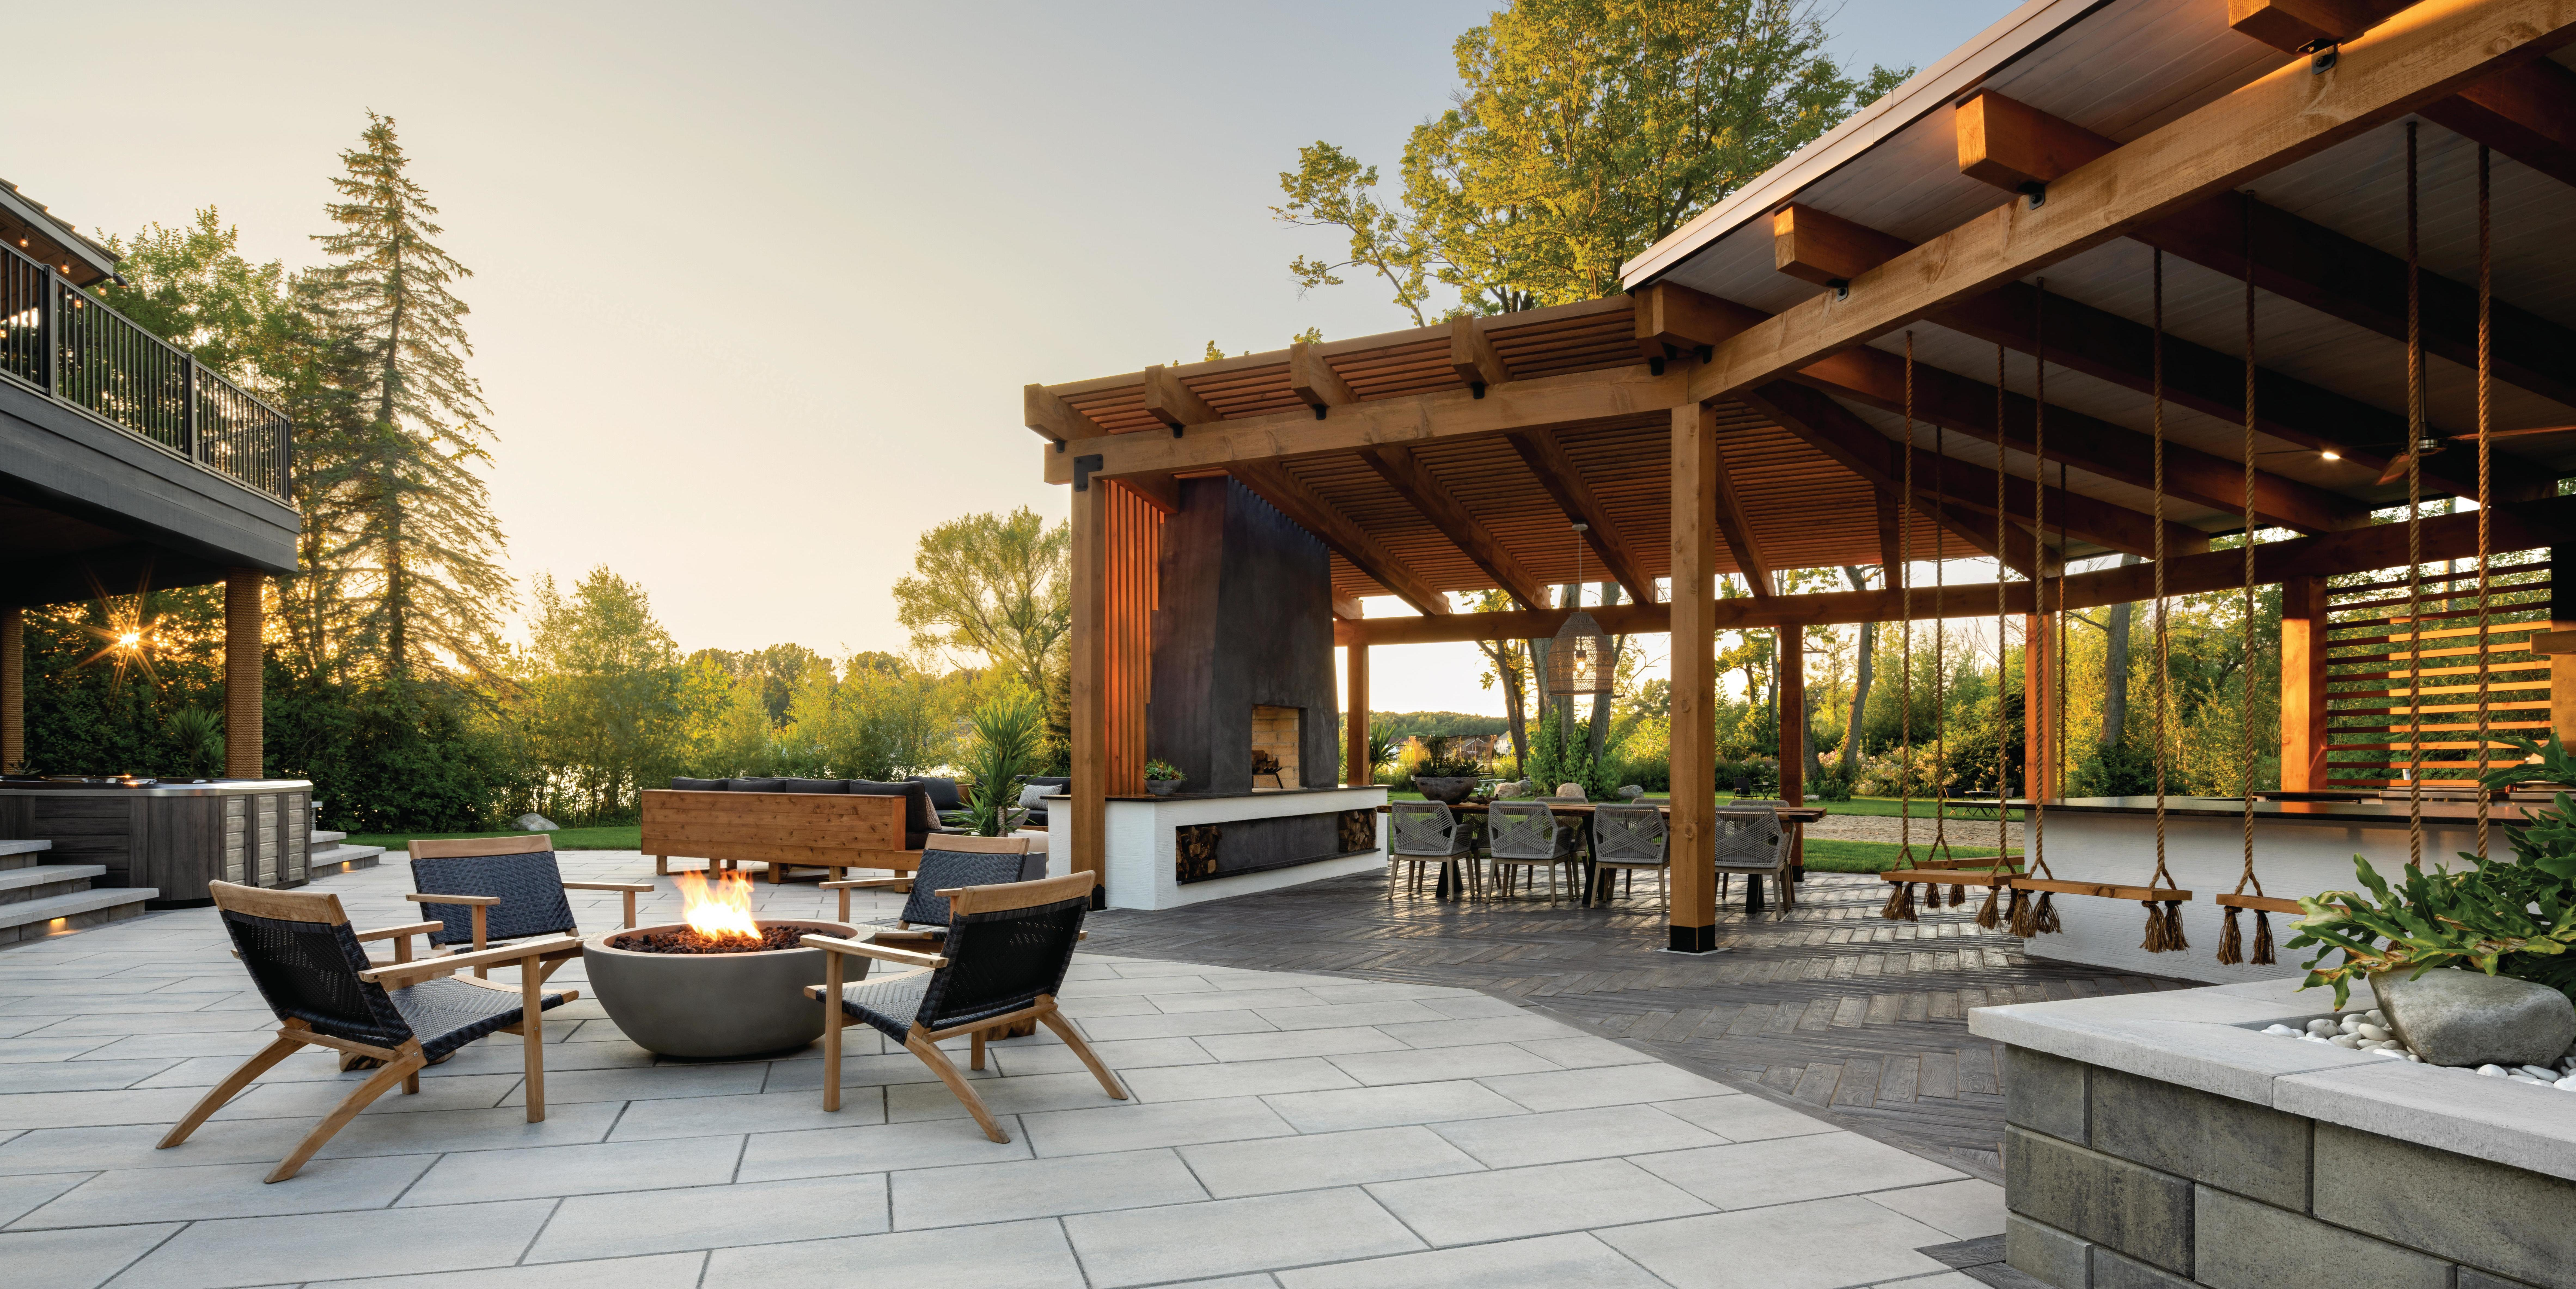 Paving-stones-fire-pit-chairs-swings